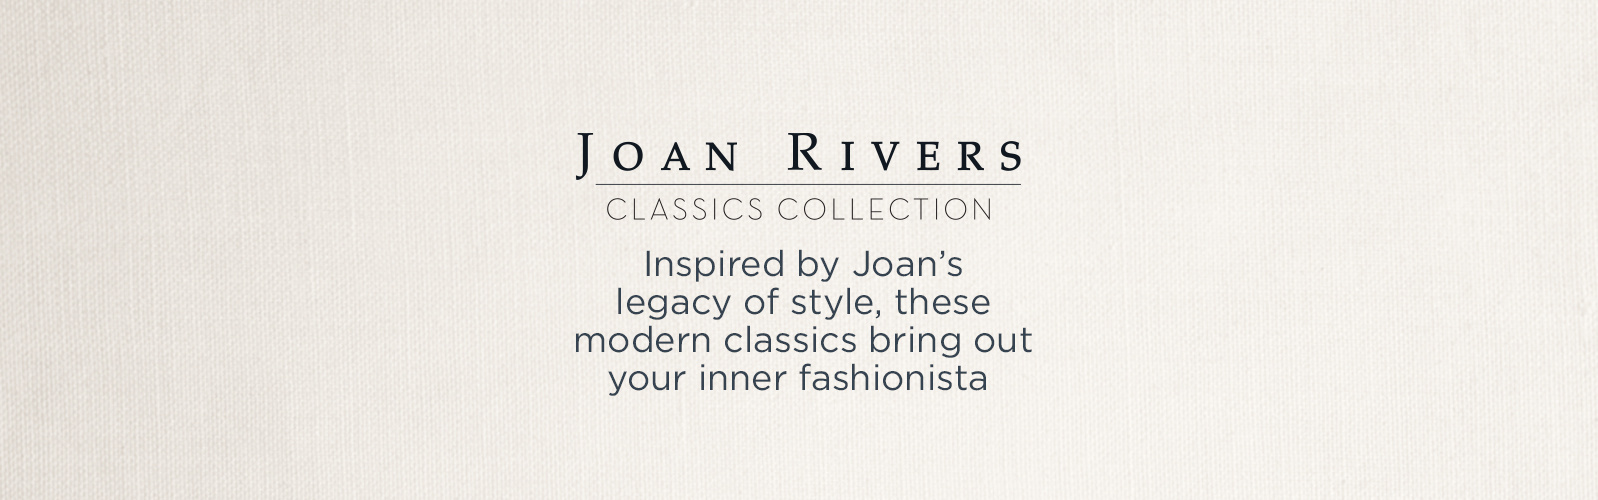 Joan Rivers Classics Collection - Inspired by Joan's legacy of style, these modern classics bring out your inner fashionista